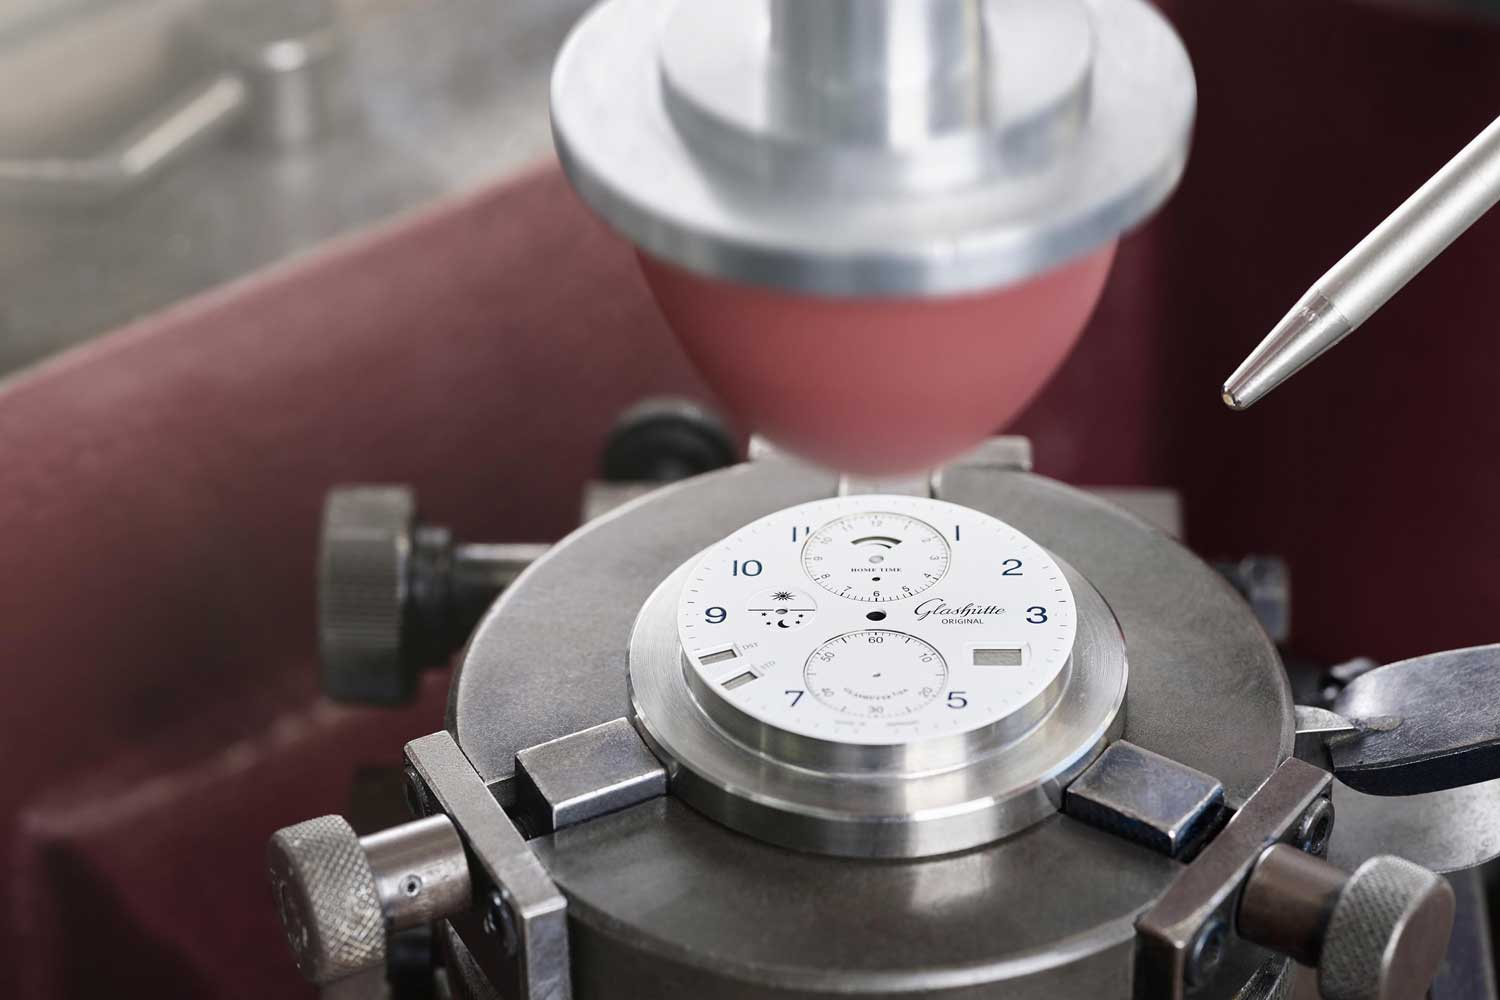 Glashütte Original makes its own dials in their facility located in Pforzheim, Germany